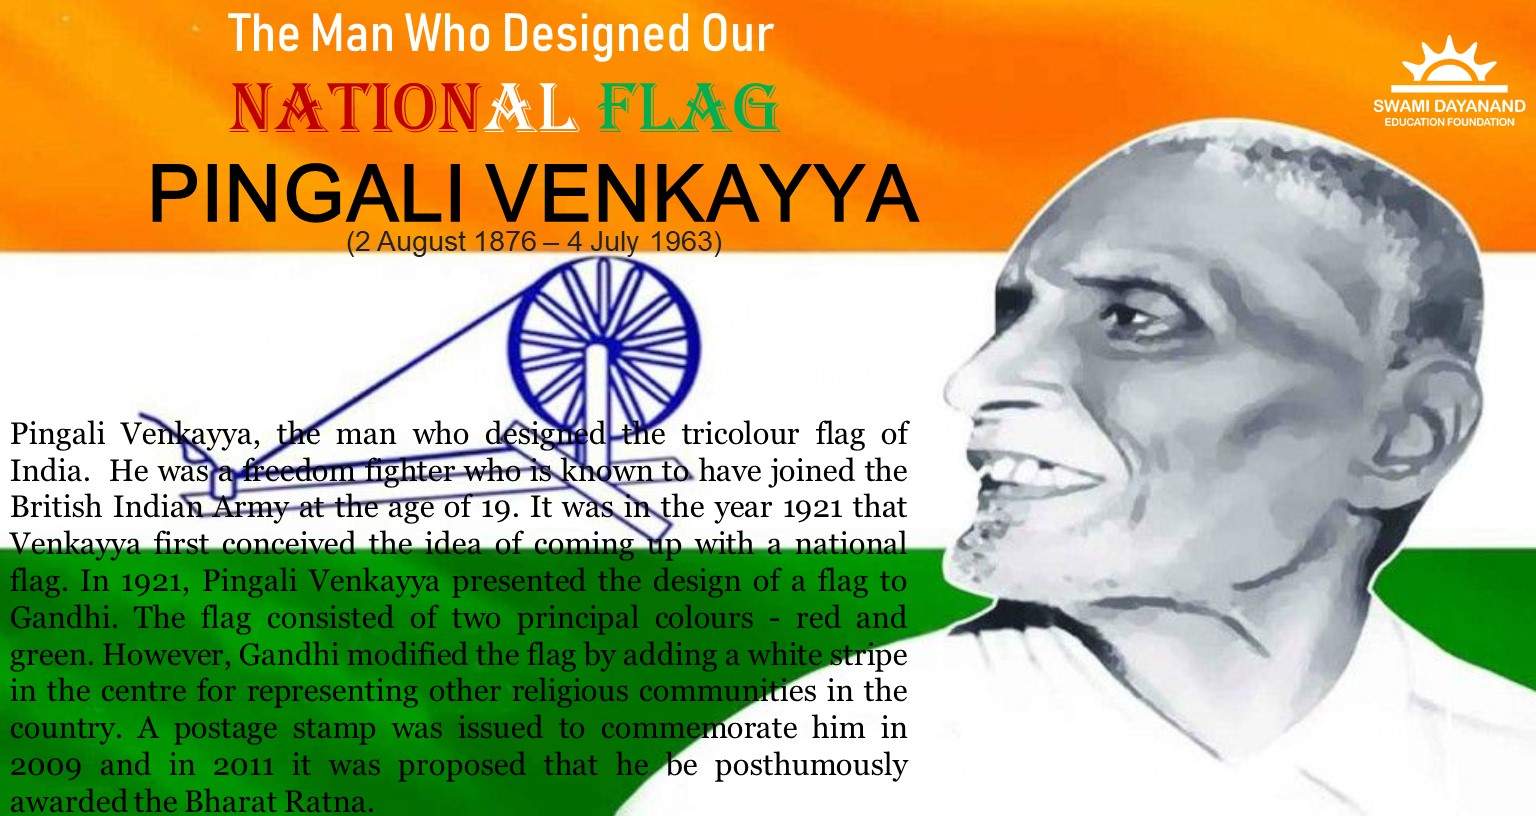 PINGALI VENKAYYA  (2nd August 1876 - 4th July 1963)